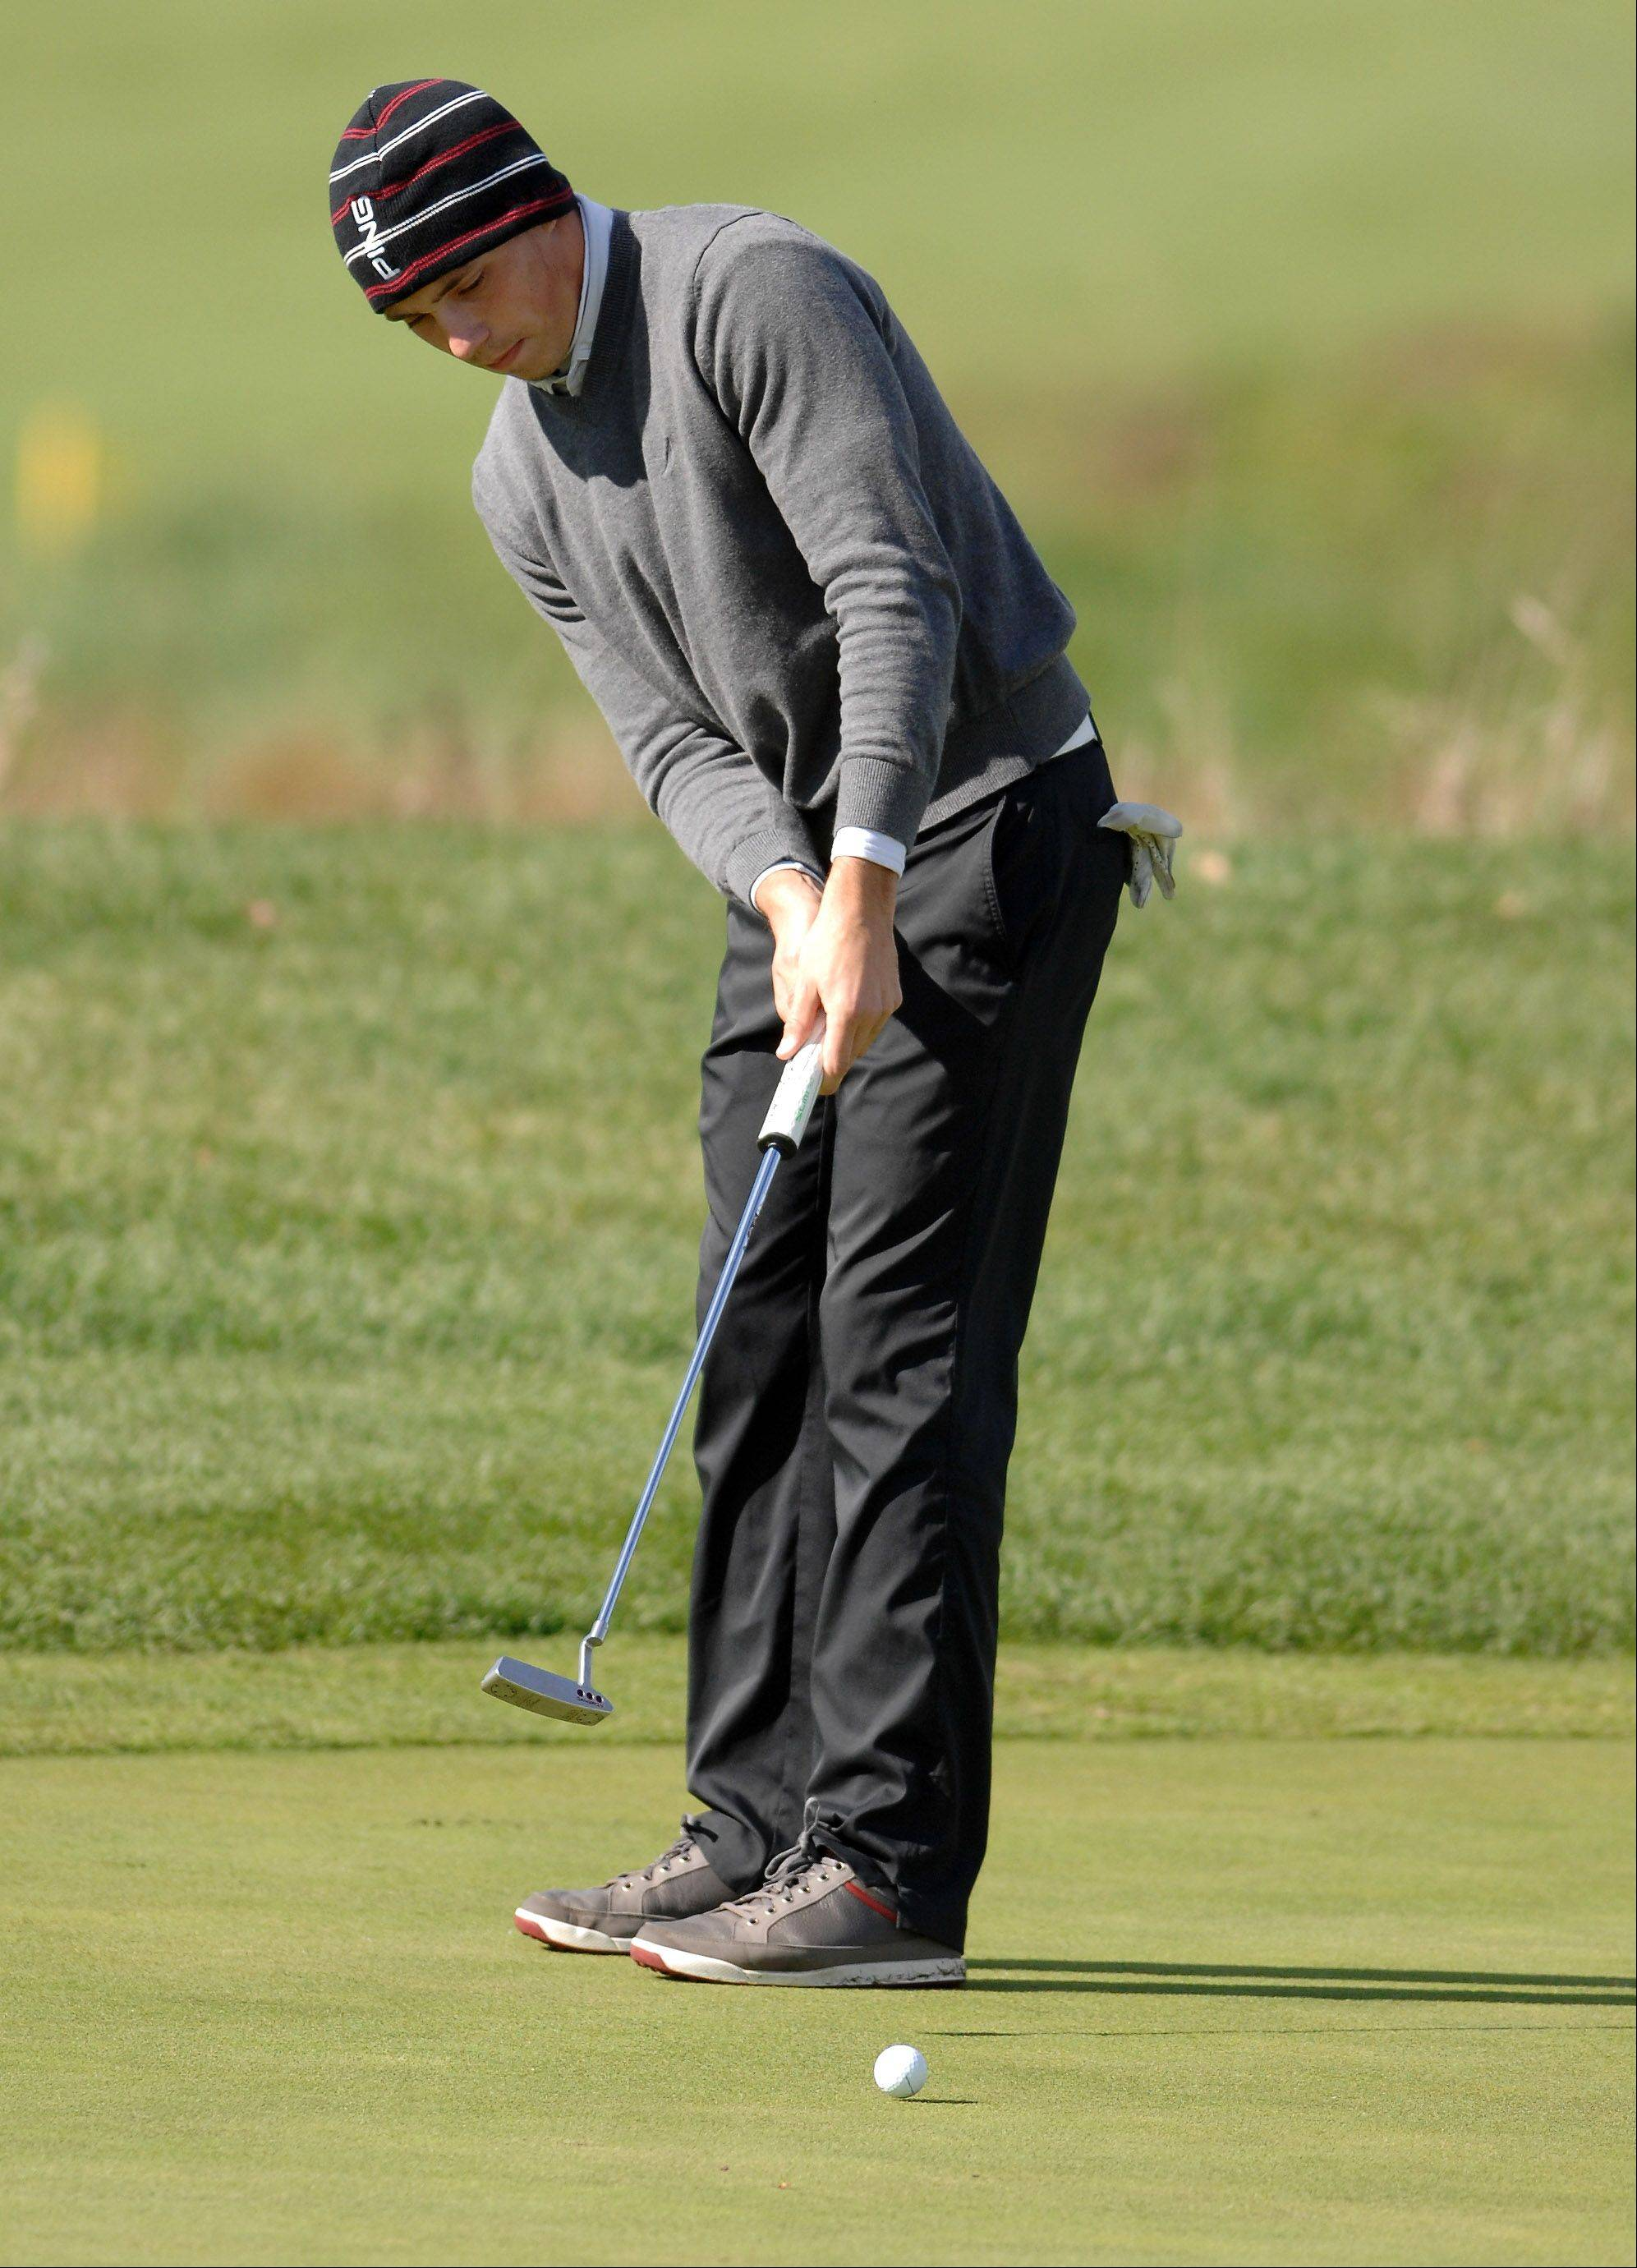 Jackson Wietecha of Carmel sinks a putt during the Huntley boys golf sectional at Blackstone Golf Club in Marengo.